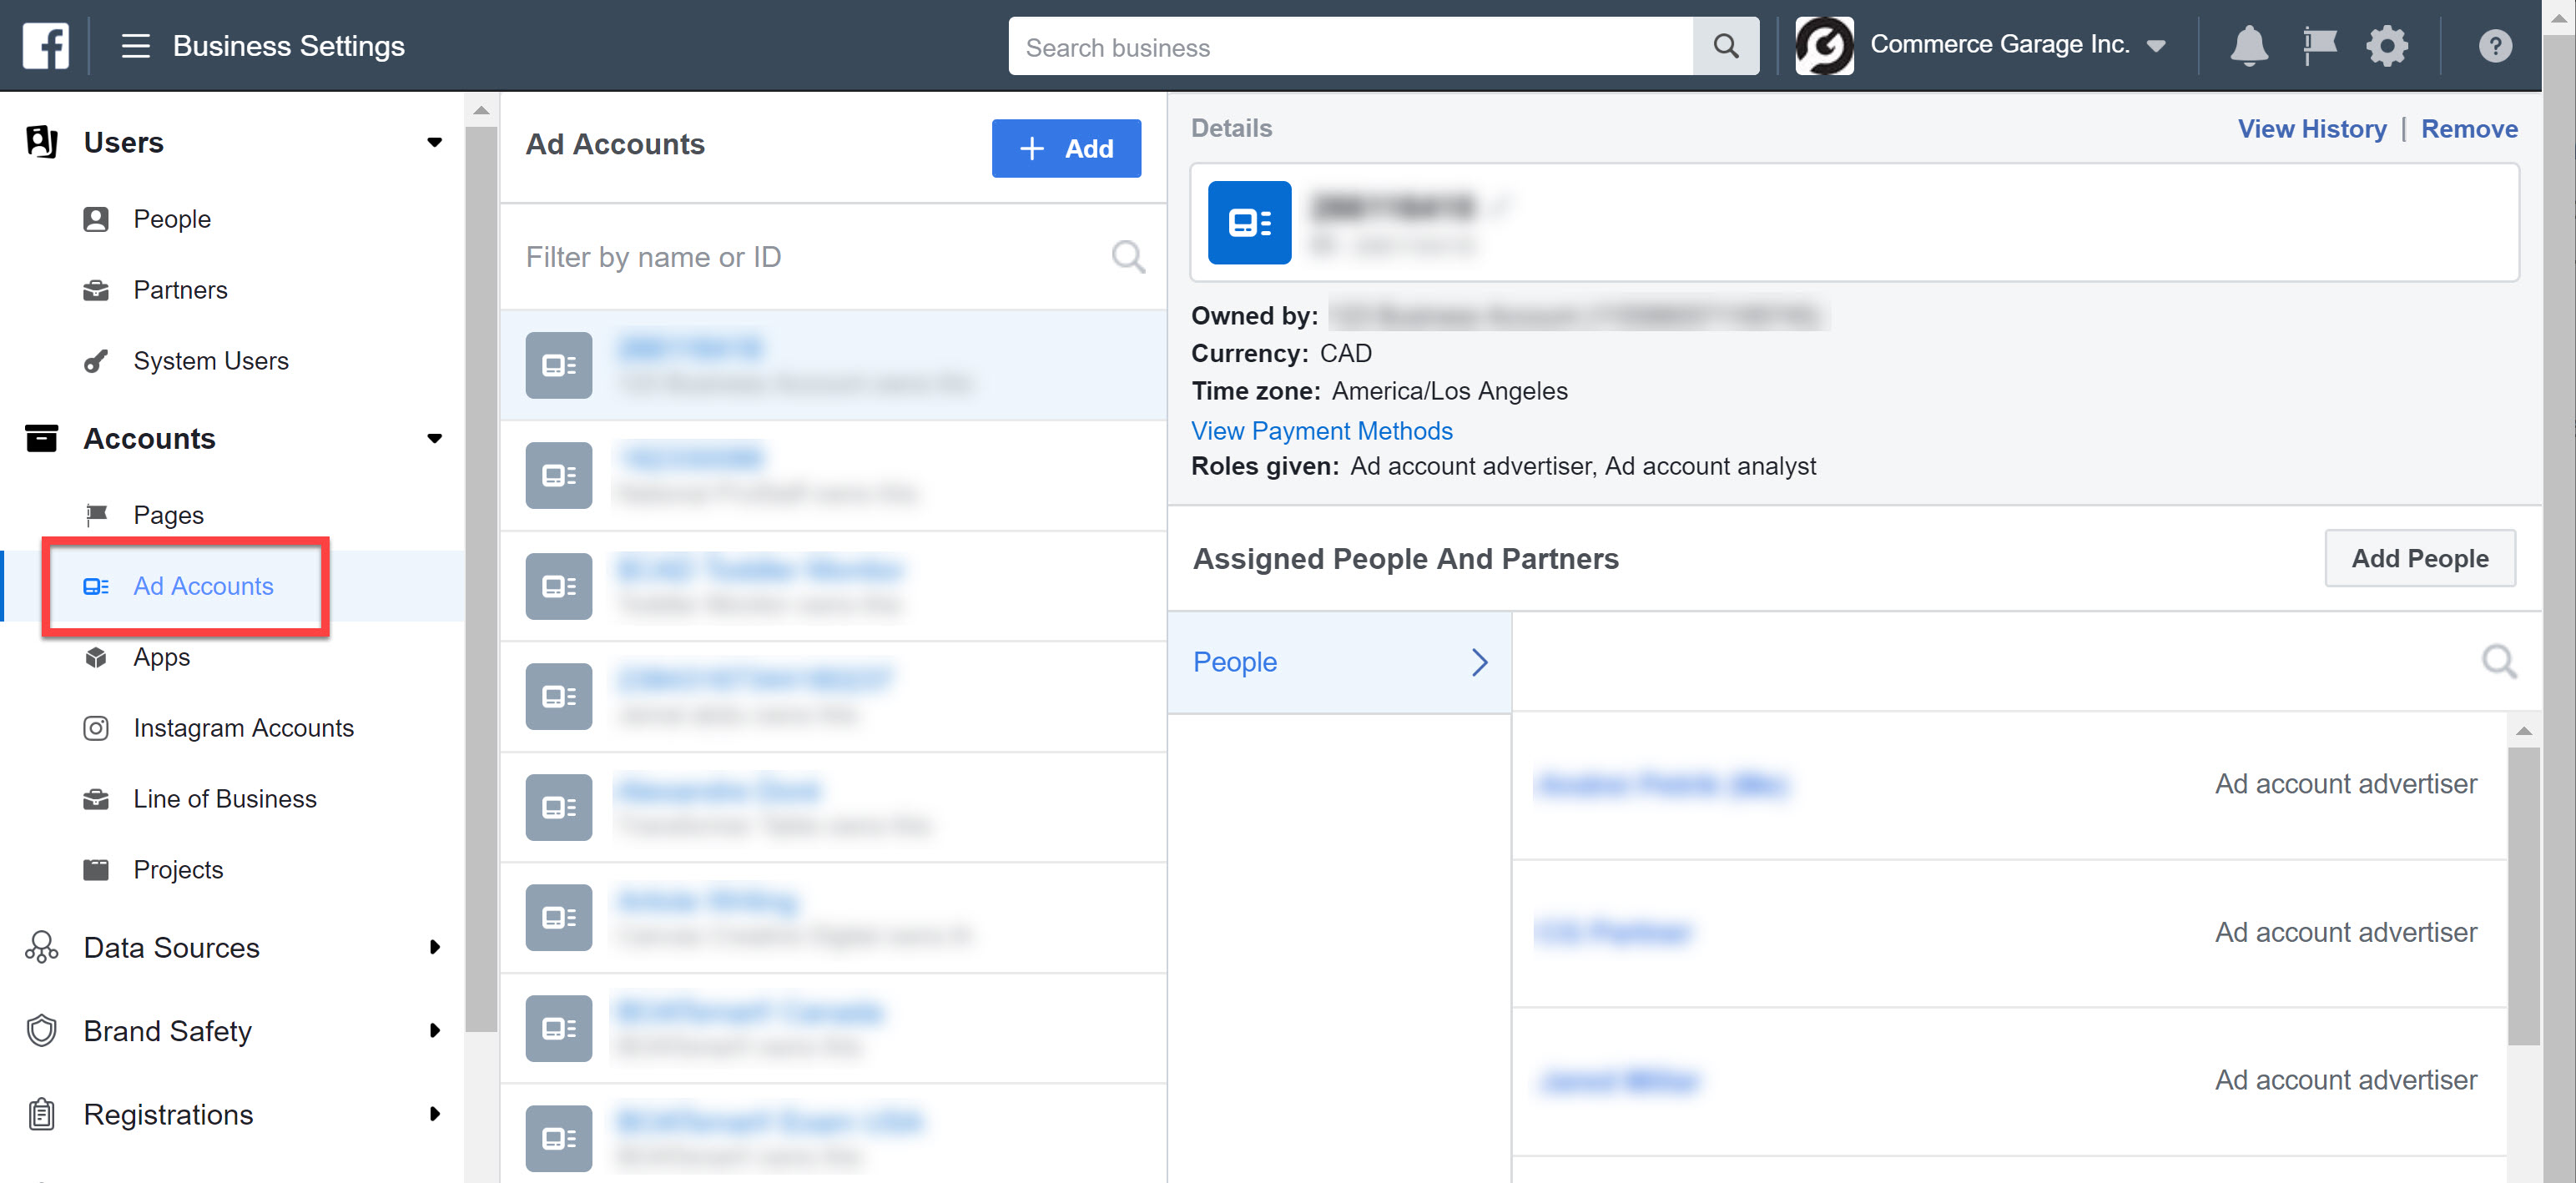 How to Add a Partner to Facebook Business Manager Accounts